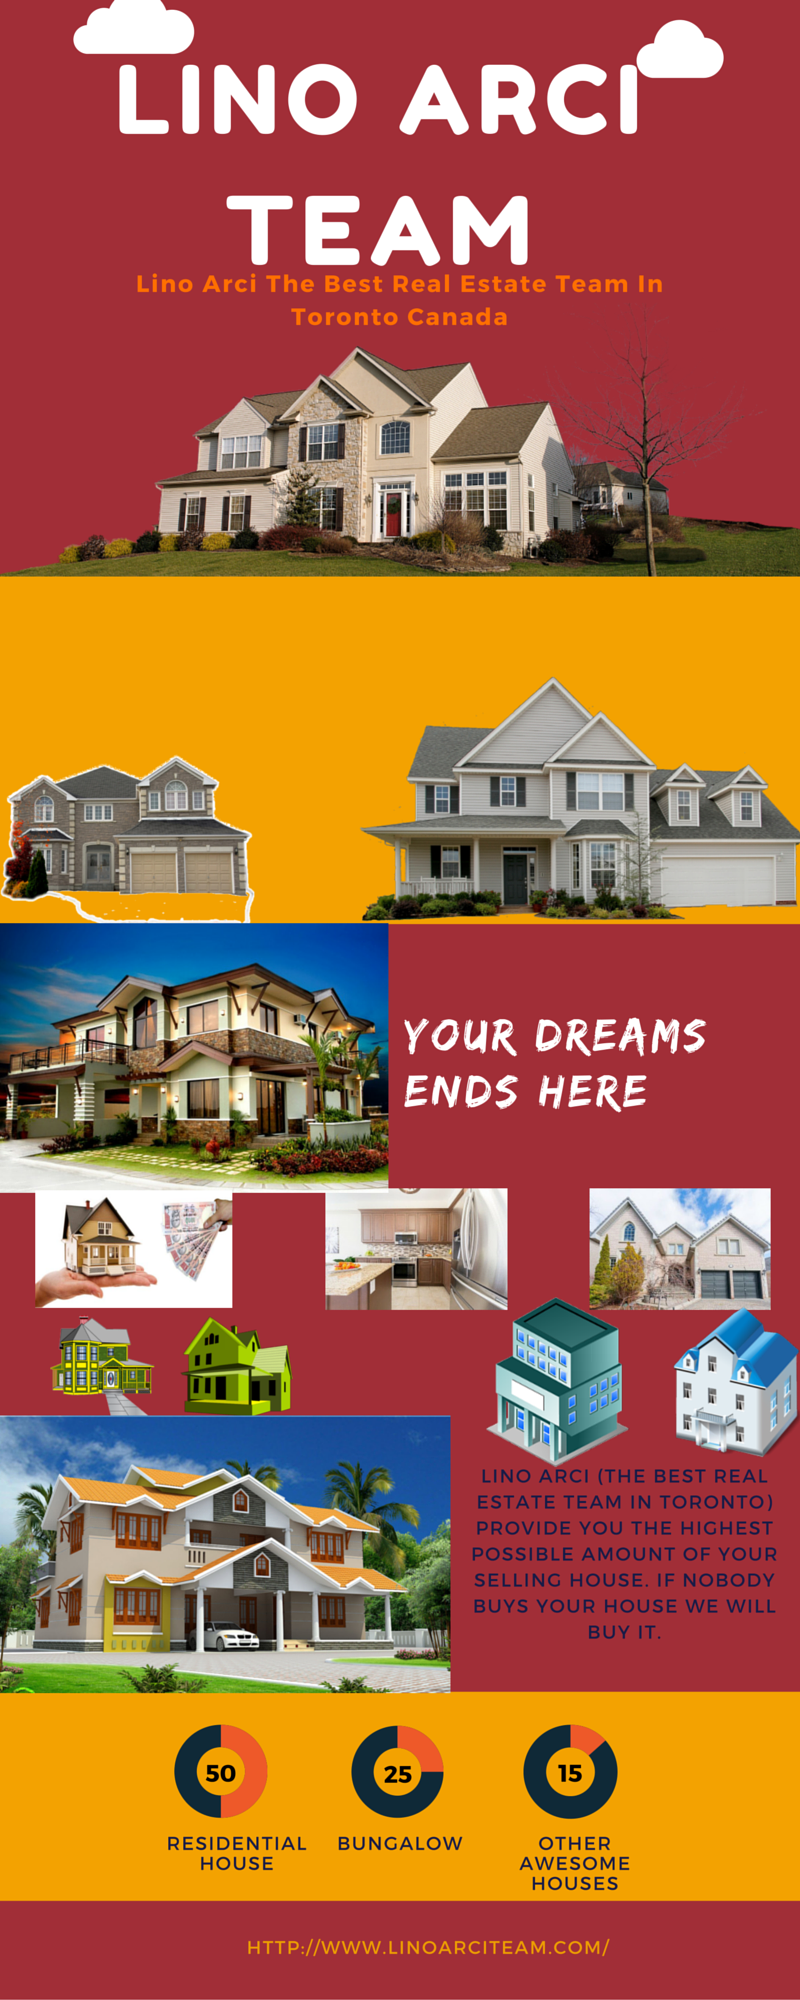 Lino Arci Providing You Homes For Sale In Kleinburg Ontario Canada Toronto Luxury Homes For Sale Vaughan Luxury H Real Estate Selling House Real Estate Agent